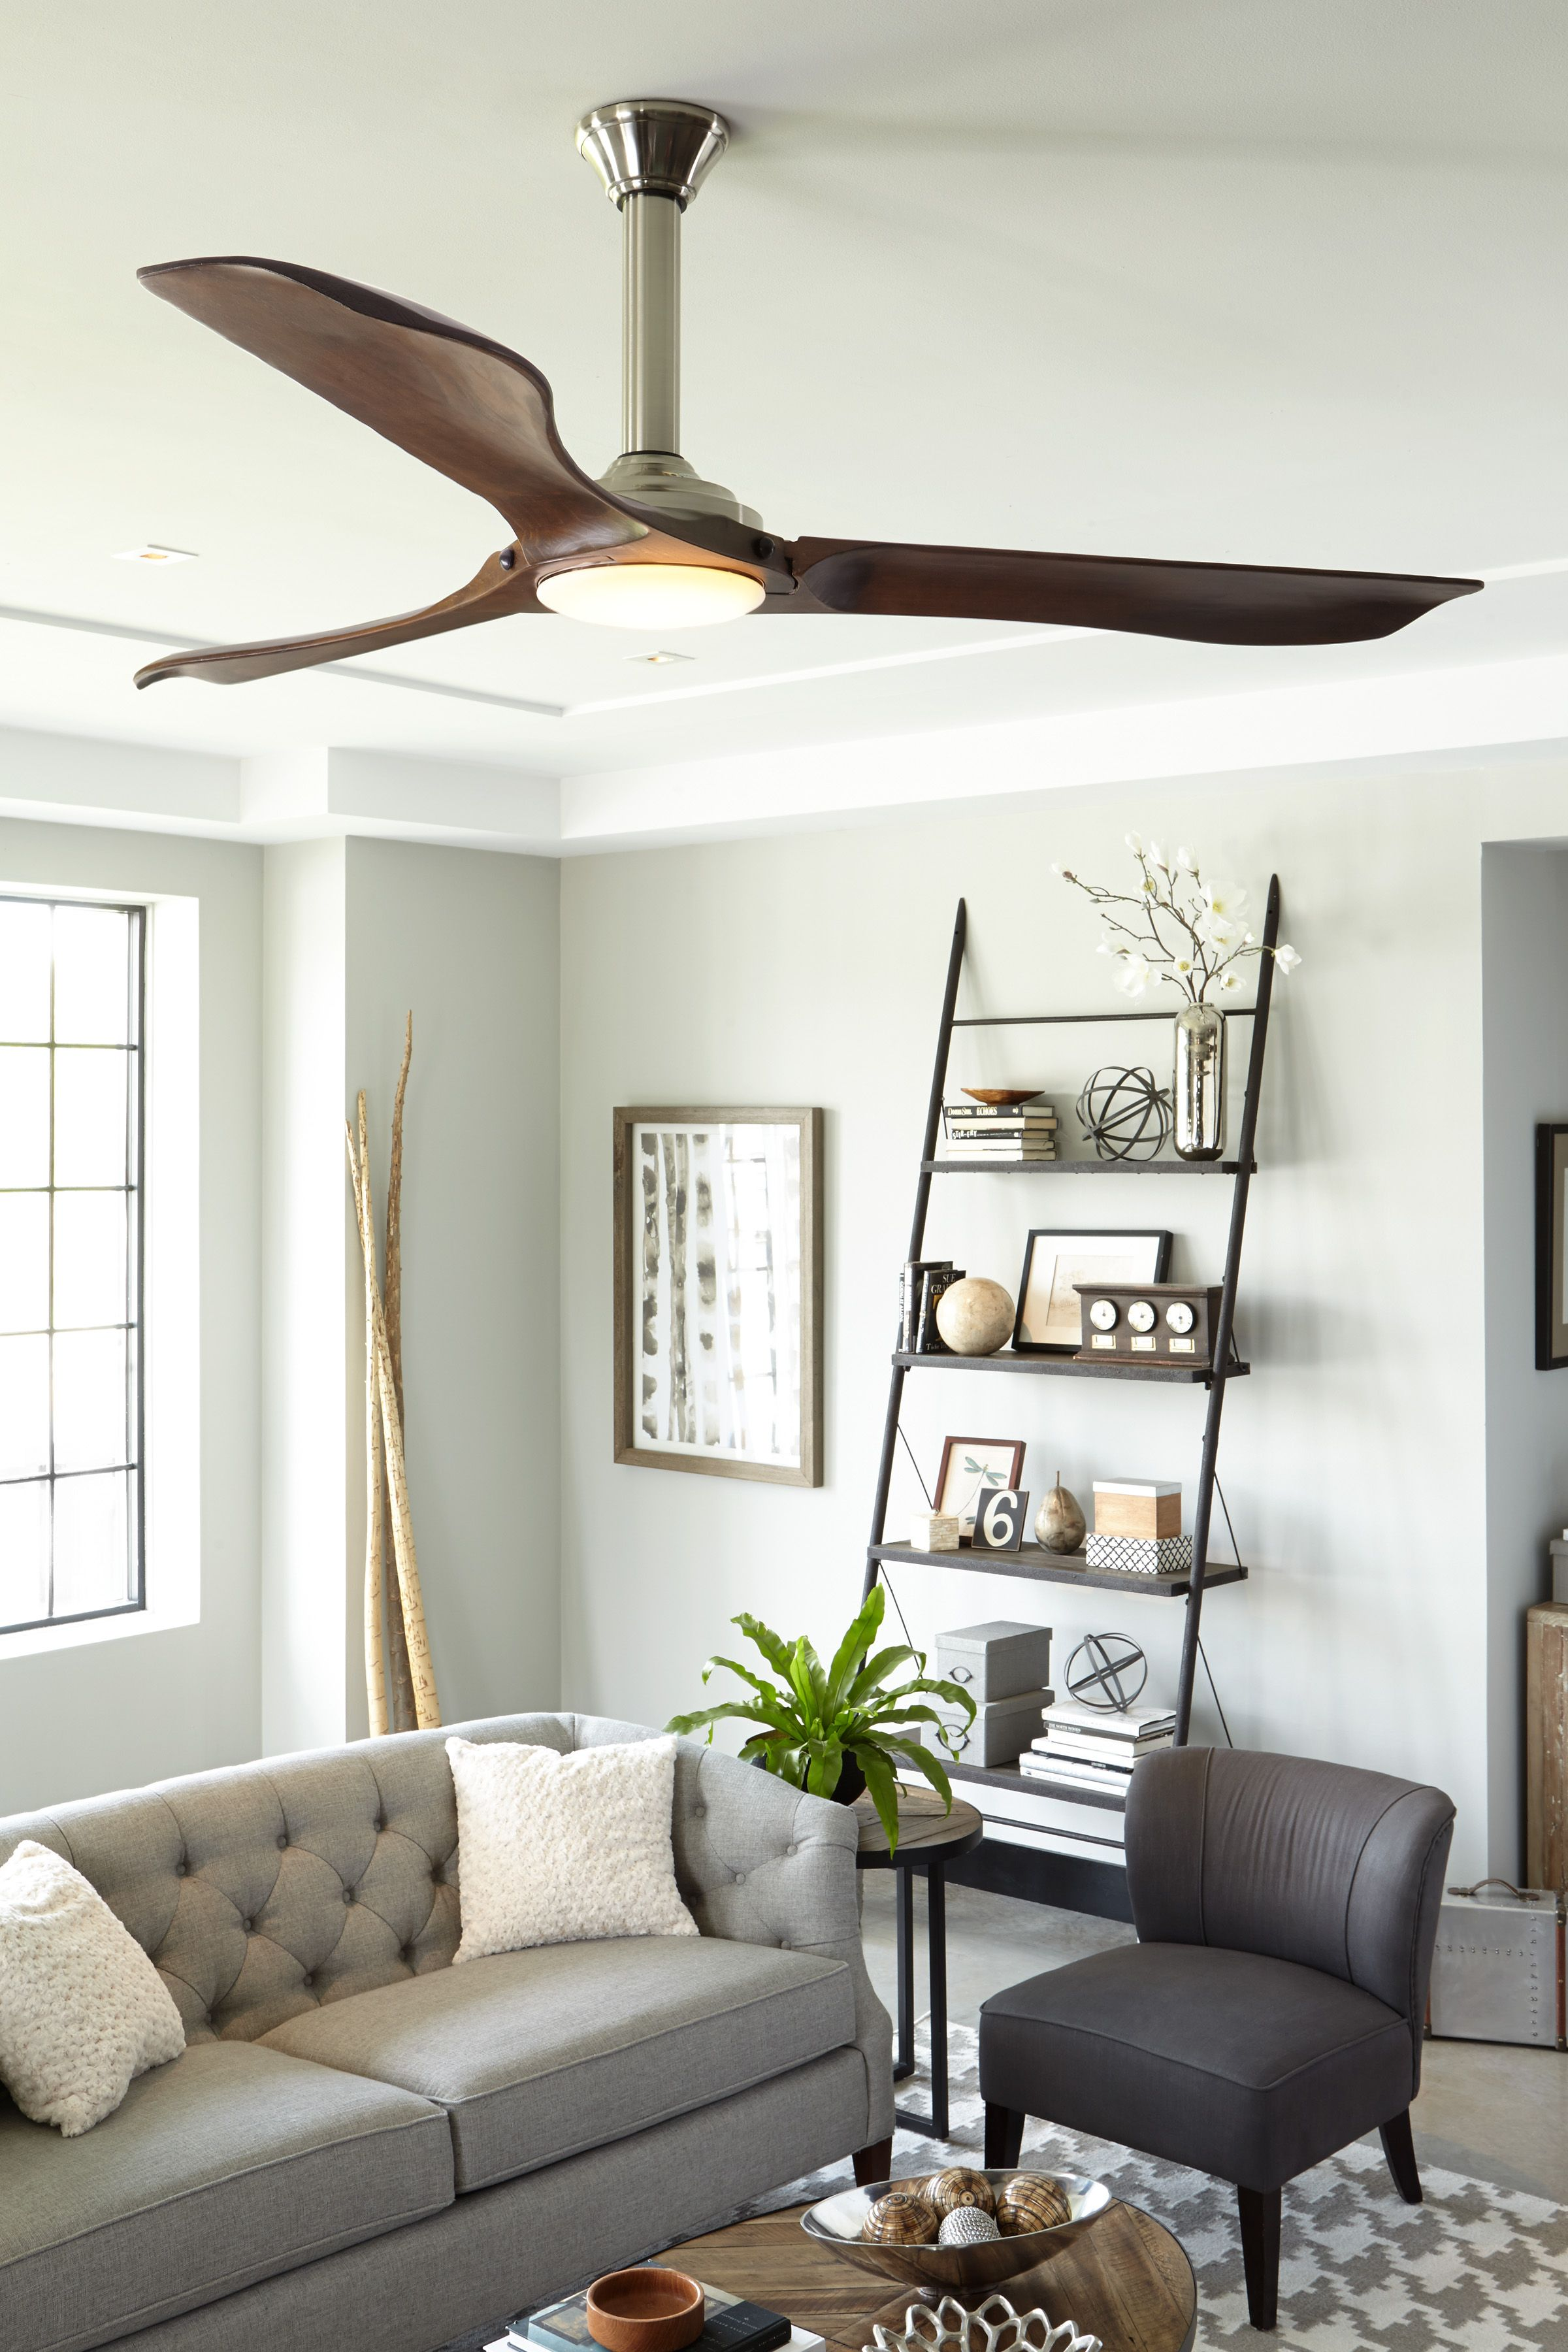 Ceiling Fan Size For Living Room With Carpet How To Choose A Guide Blades Airflow Library Minimalist Max From Monte Carlo Company